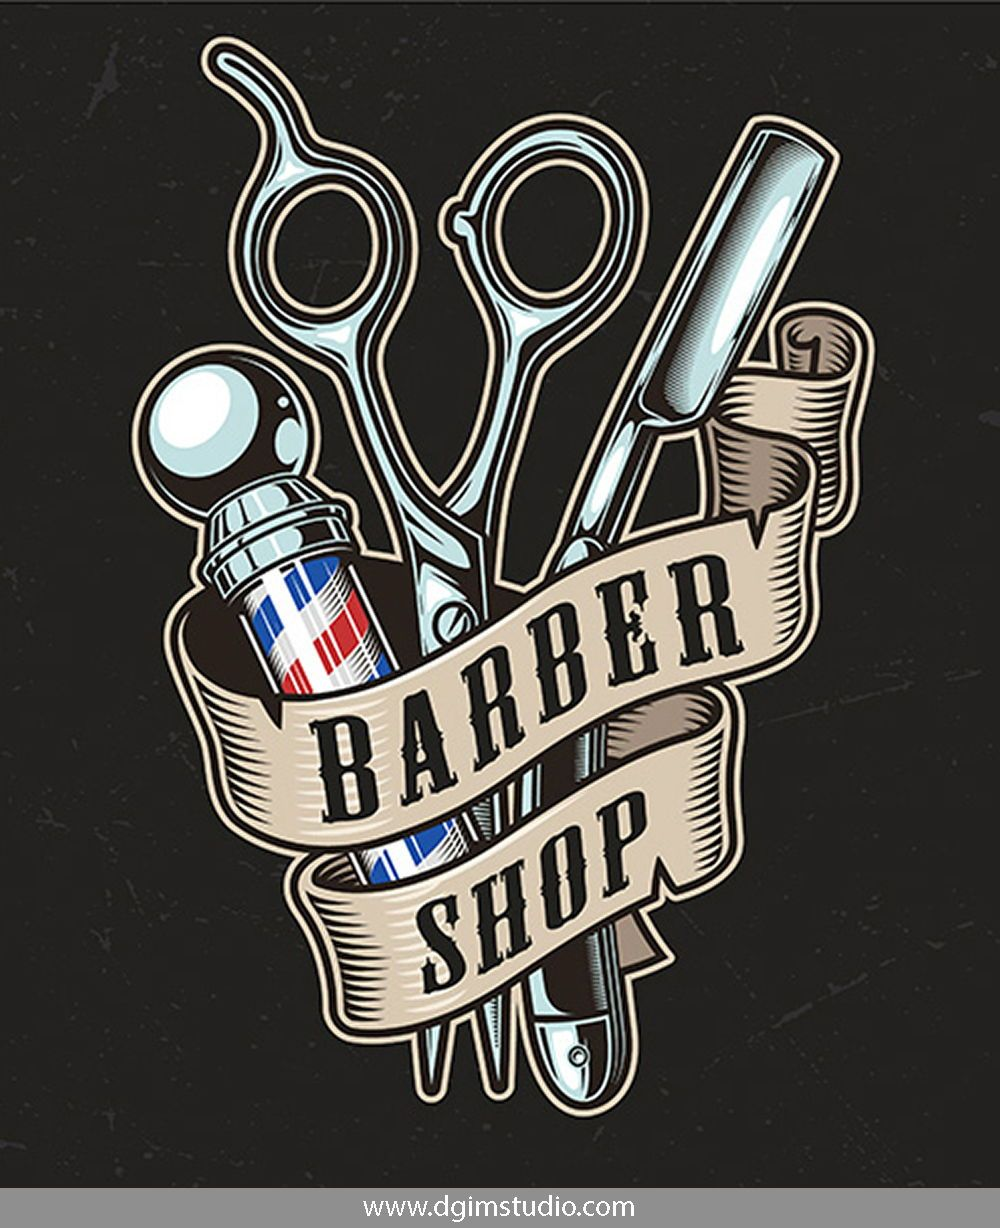 Old school style colorful Barber Shop emblem with scissors, a blade, a barber pole and ribbon around them. Editable text & high quality. CLICK ON THE LINK to find more colorful barbershop emblems!#vectorillustration #vector#illustration #design #dgimstudio #barber #barbershop#hairdresser #electric #hairclipper #skull#scissor #shavercrown #haircuts